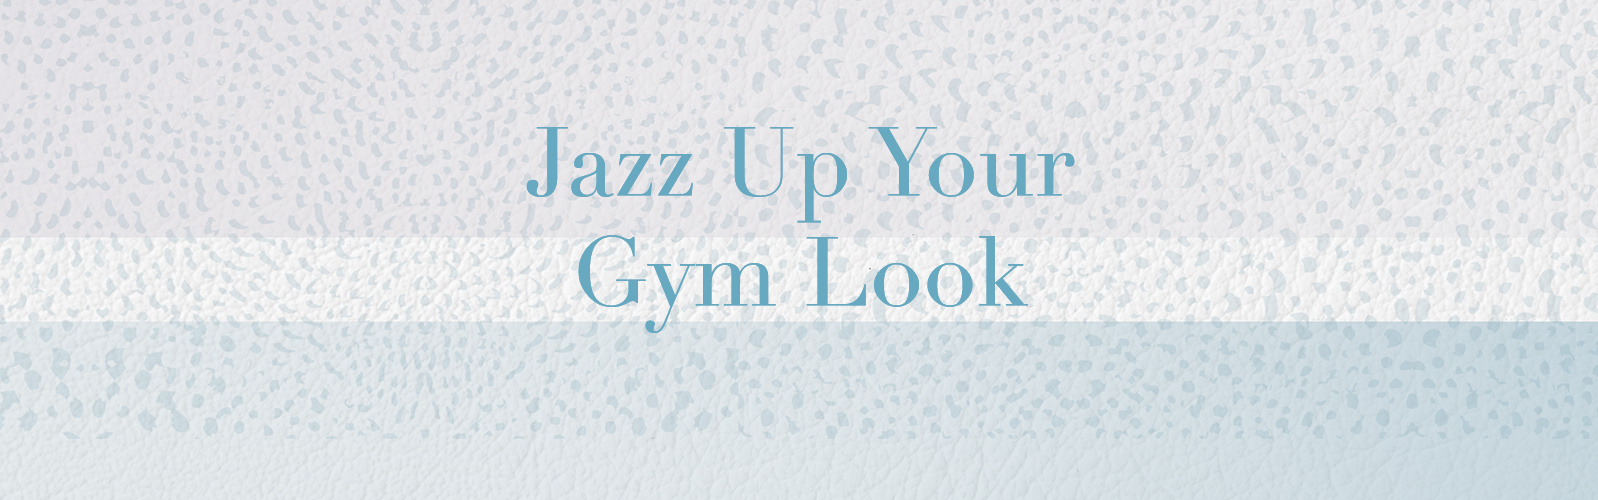 Jazz Up Your Gym Look